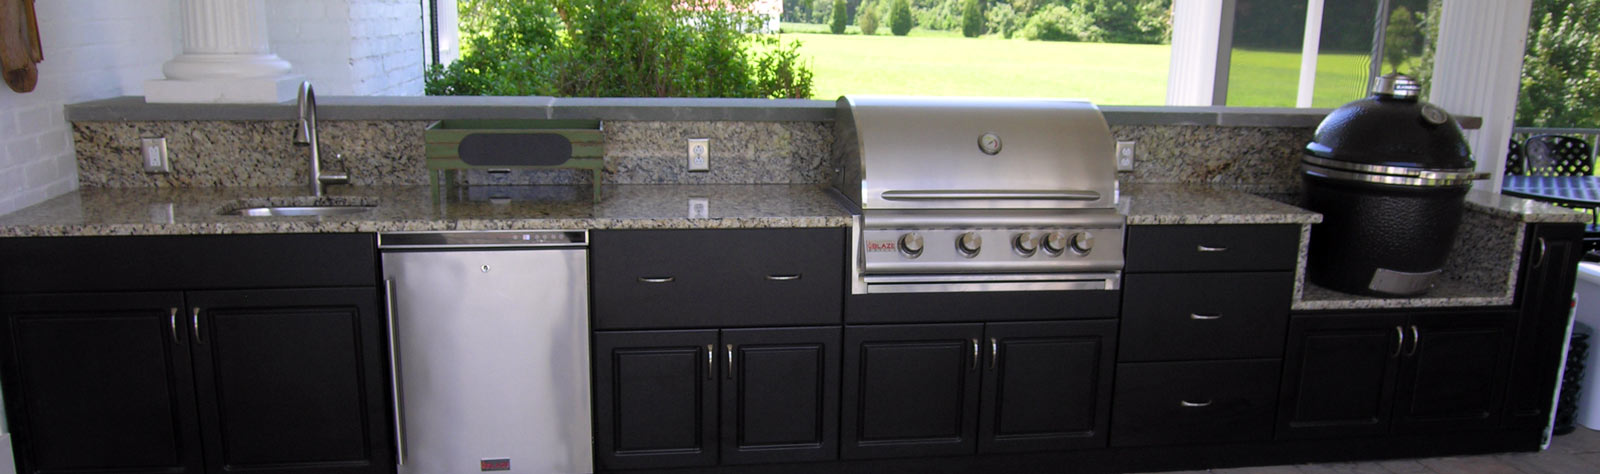 Outdoor Kitchen Creations Richmond Va Your Complete Outdoor Kitchen Destination